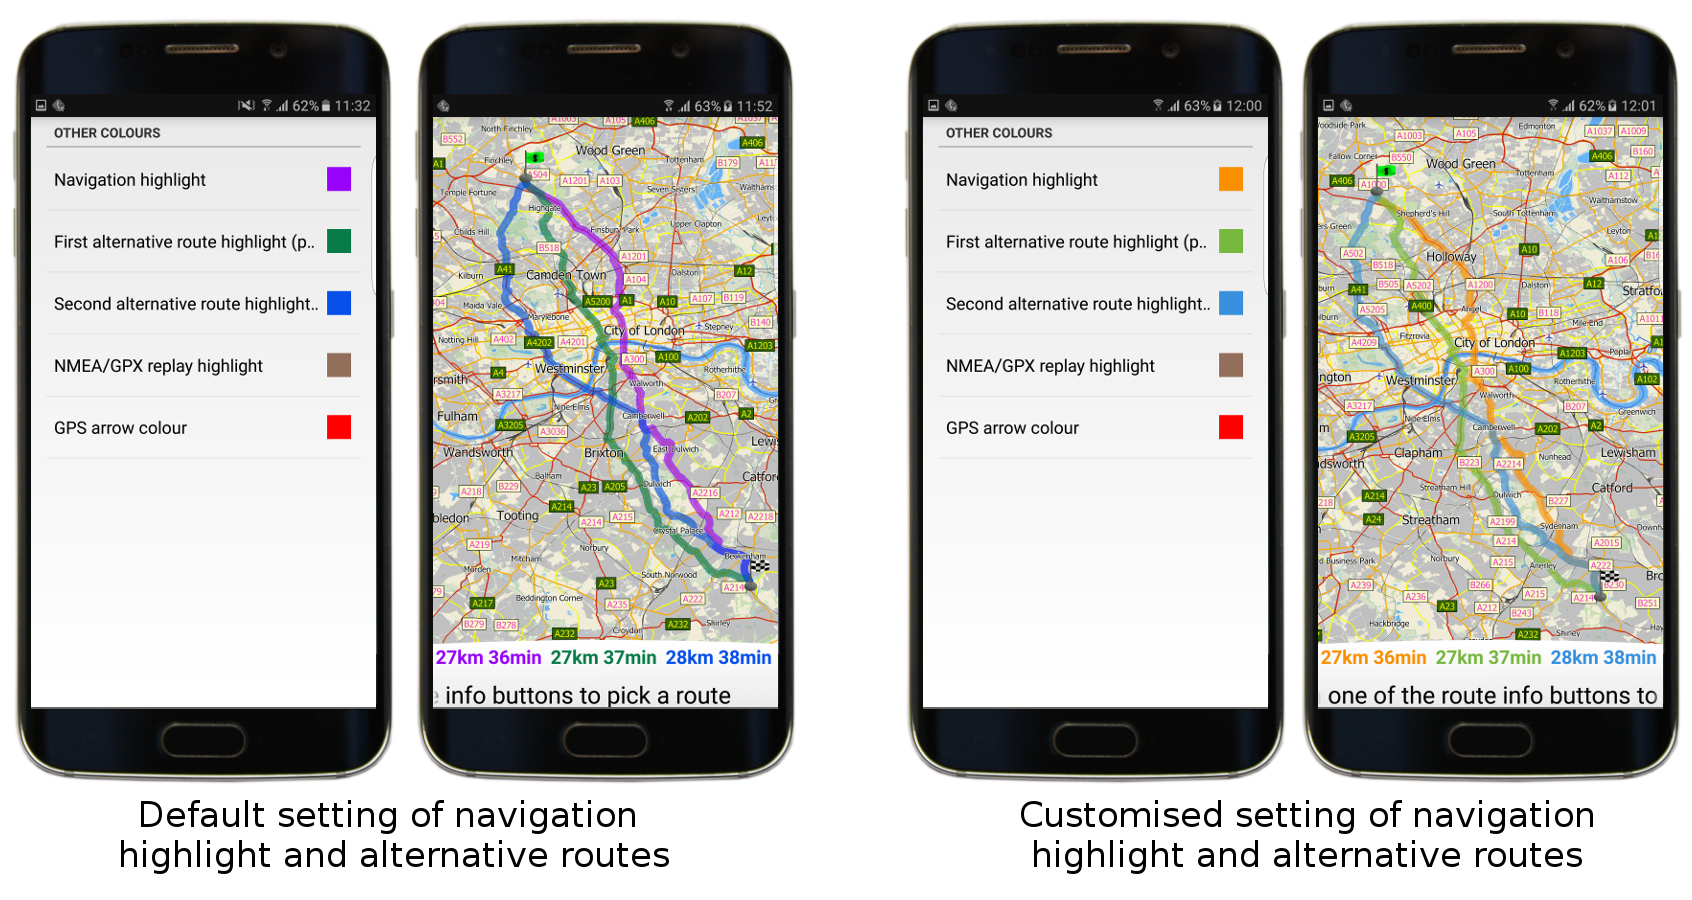 Setting of other colours in mapfactor GPS Navigation